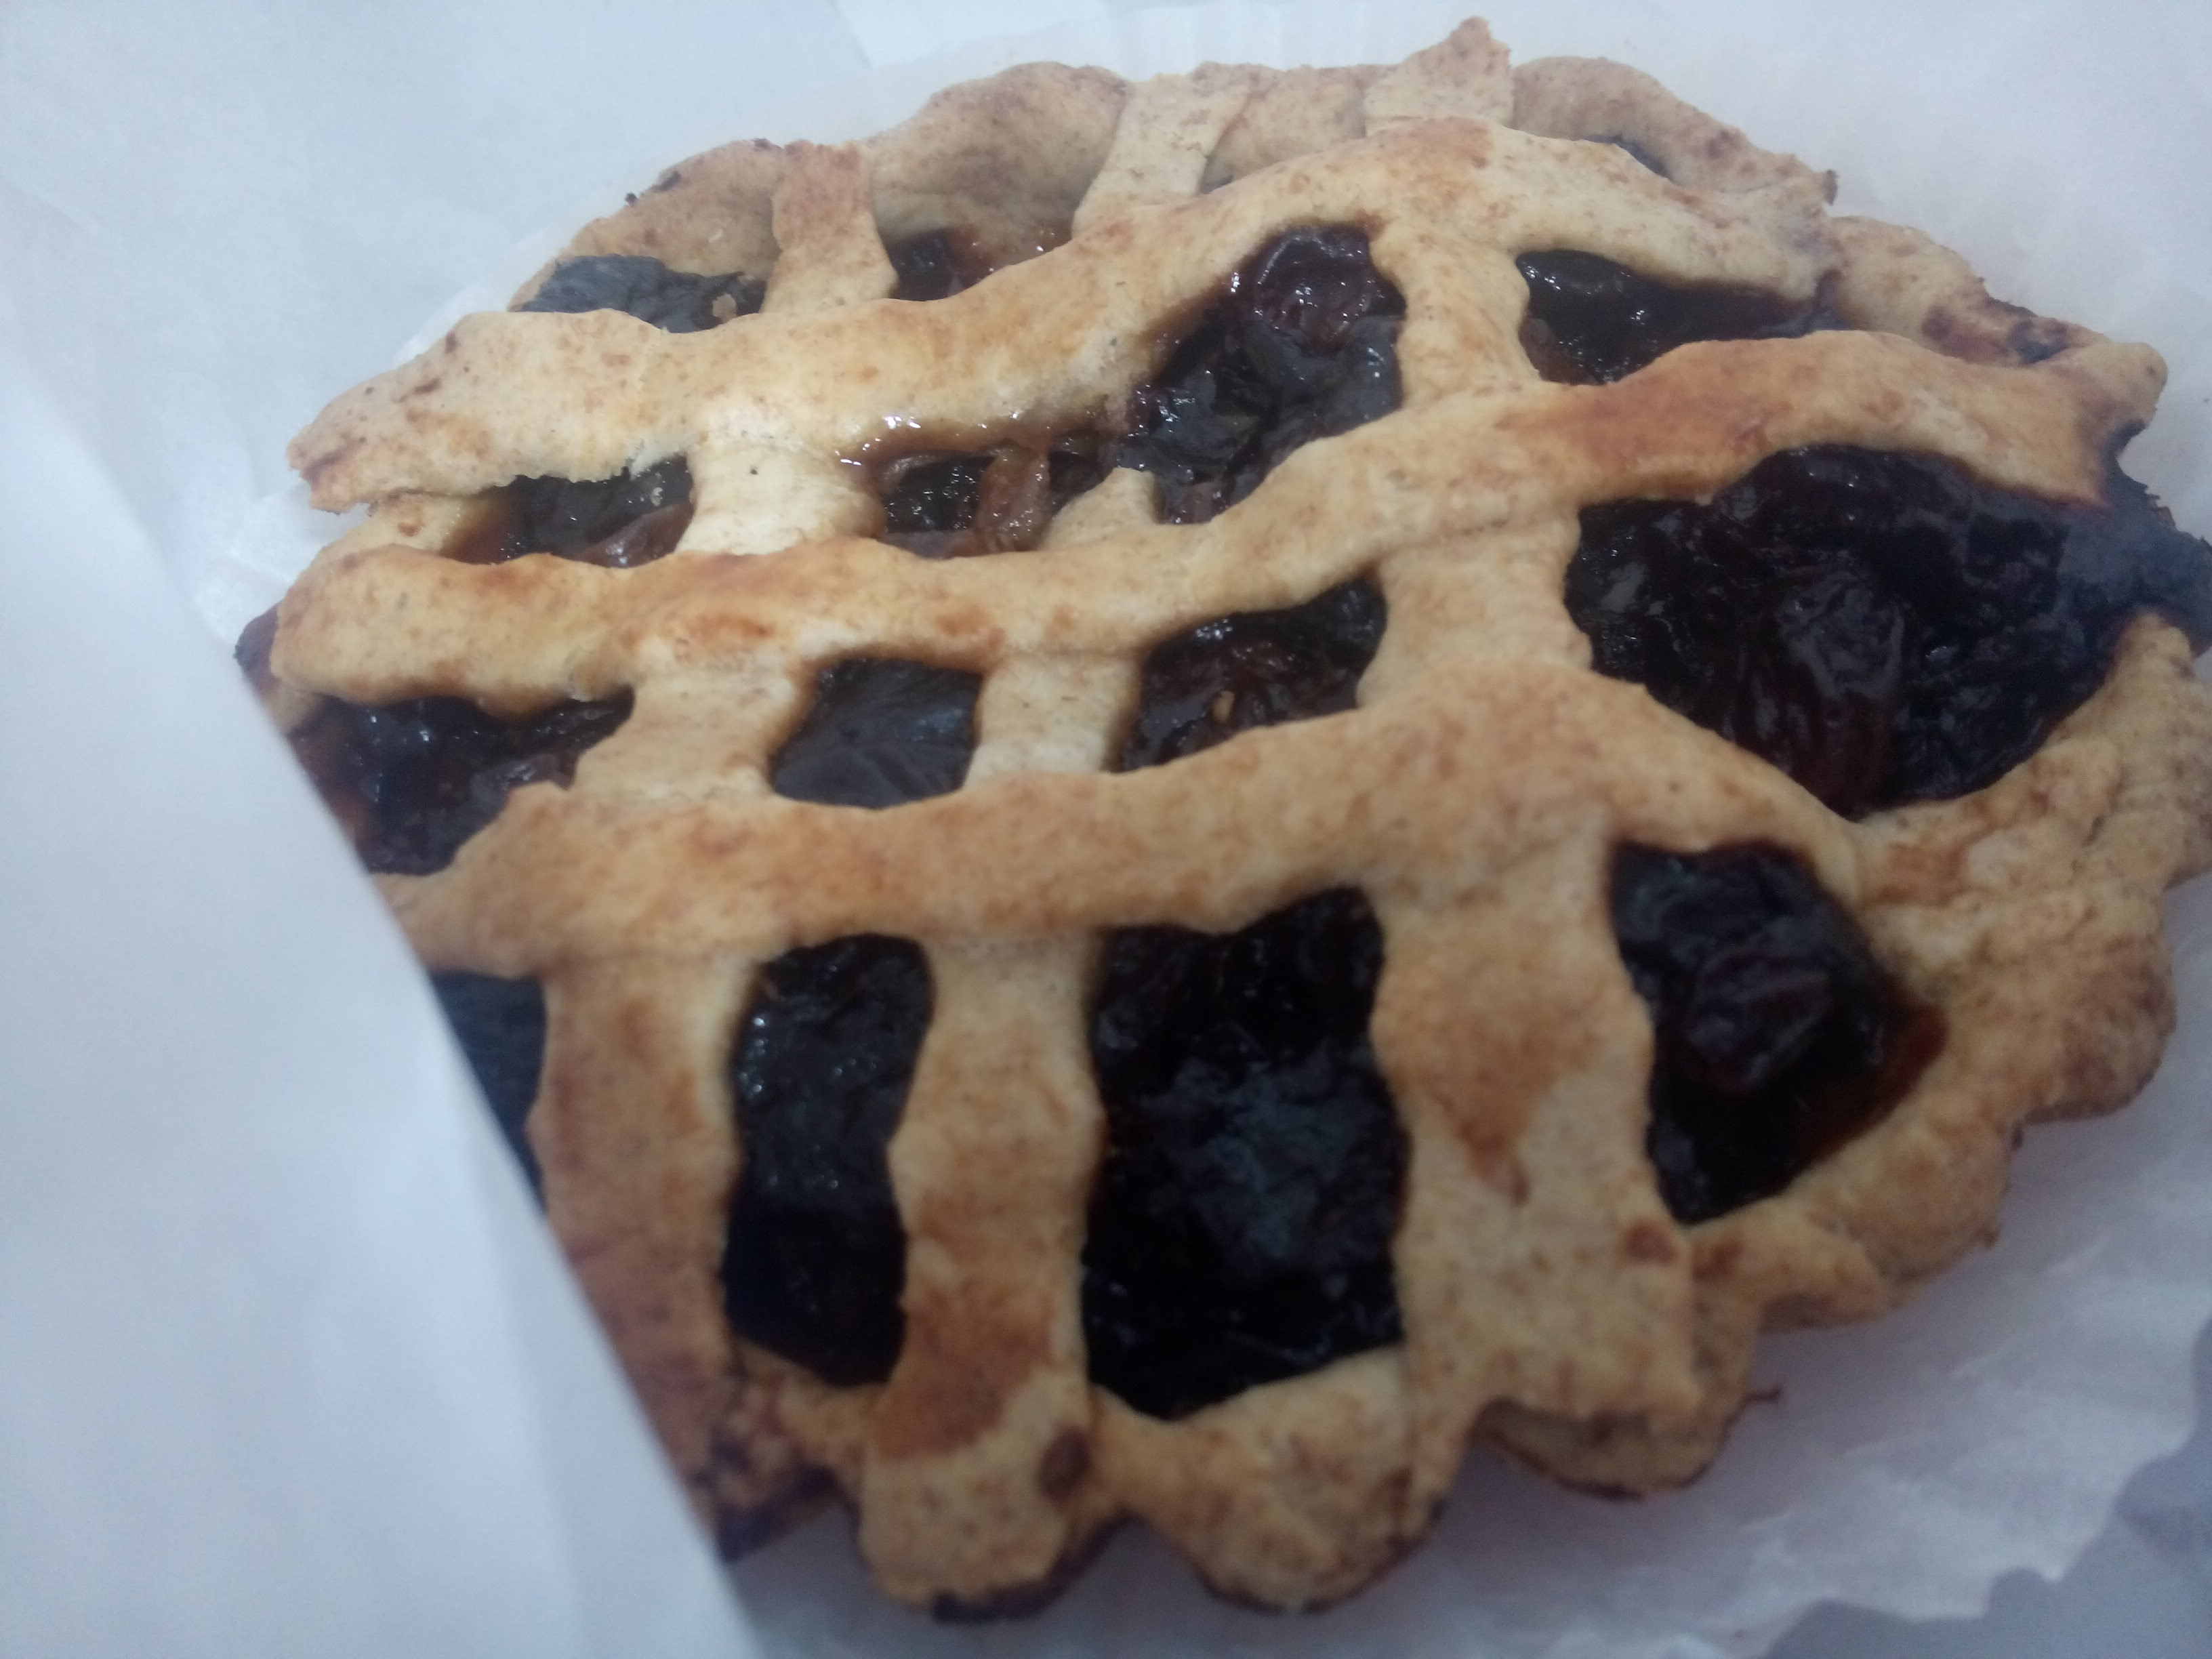 A tart of dark dried fruits criscrossed with pastry in white paper